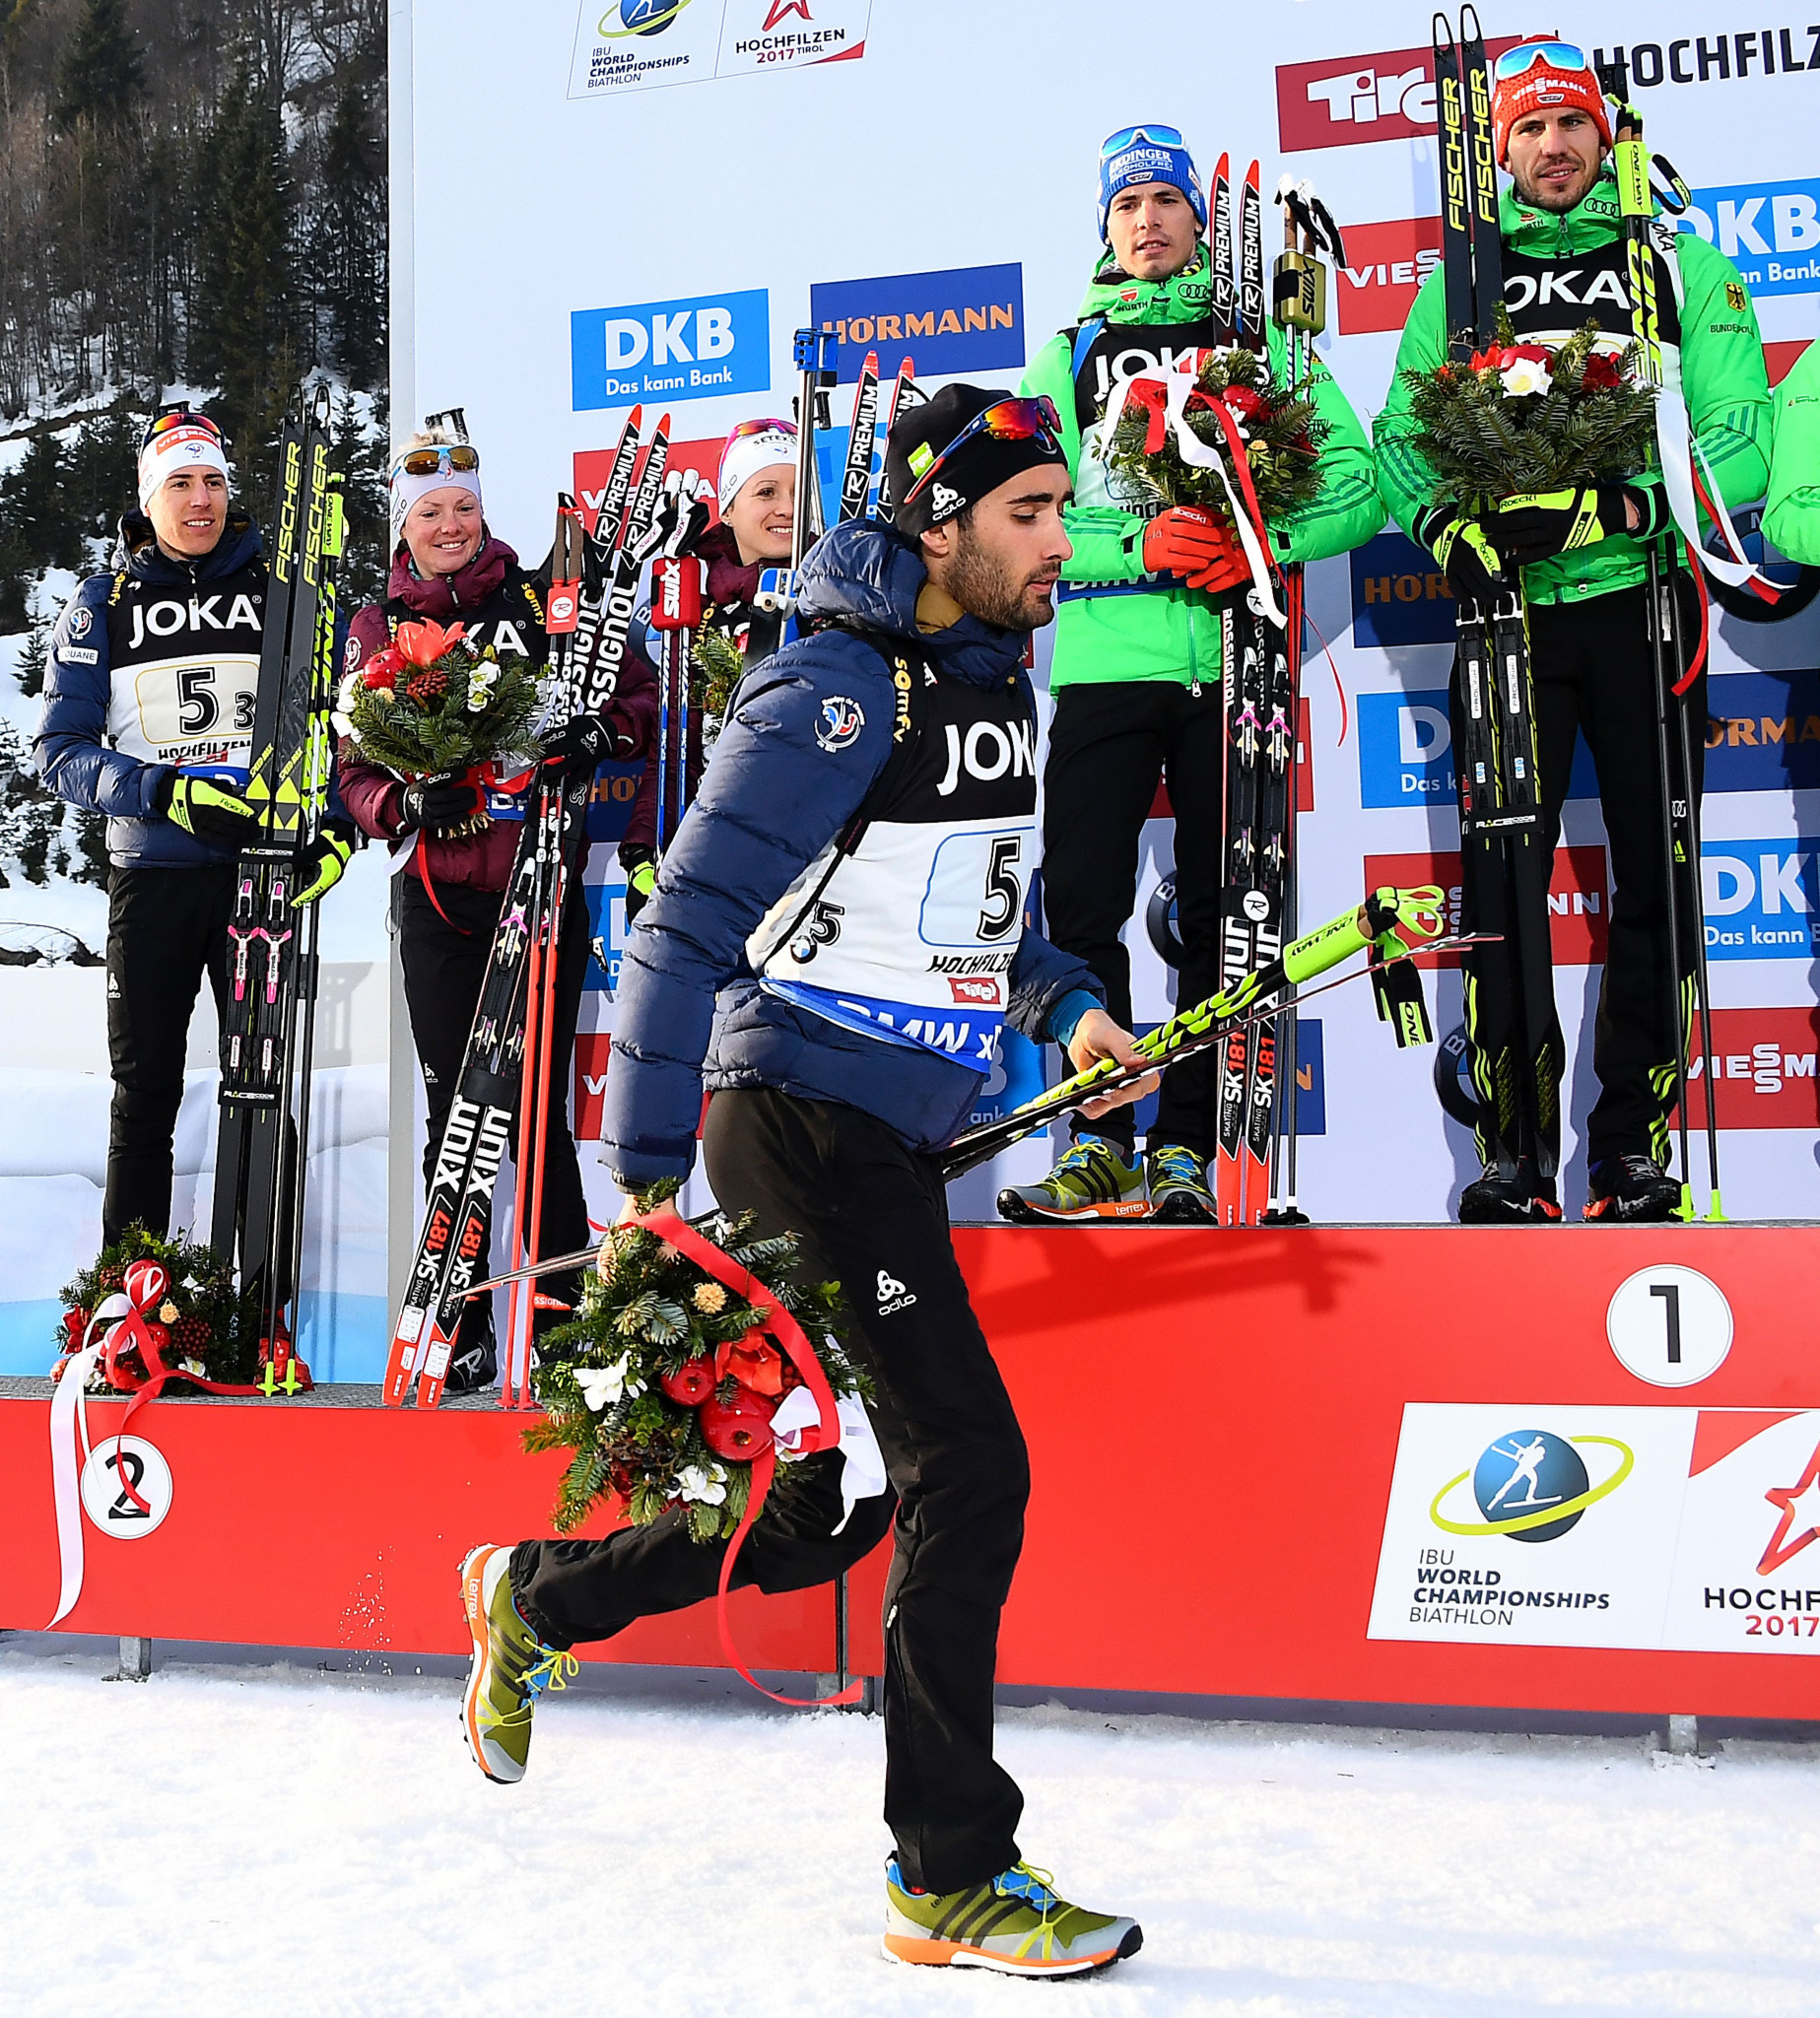 Martin Fourcade left the podium at the 2017 Biathlon World Championships as Russia received a bronze medal in the mixed relay event ©Getty Images